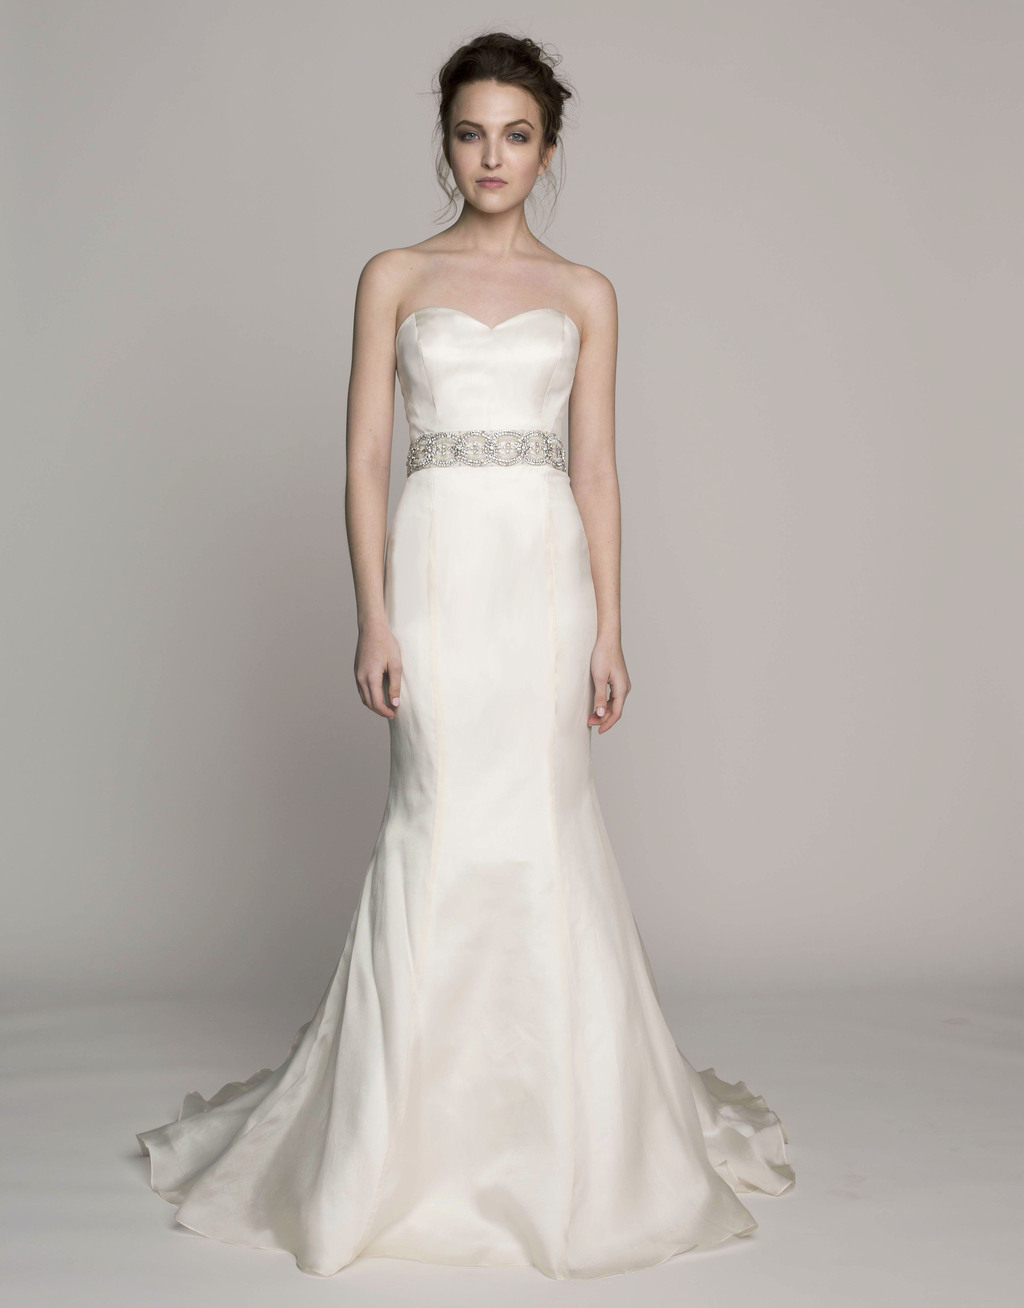 Kelly Faetanini Wedding Dress 2014 Spring Bridal Gown Collection Devan Front